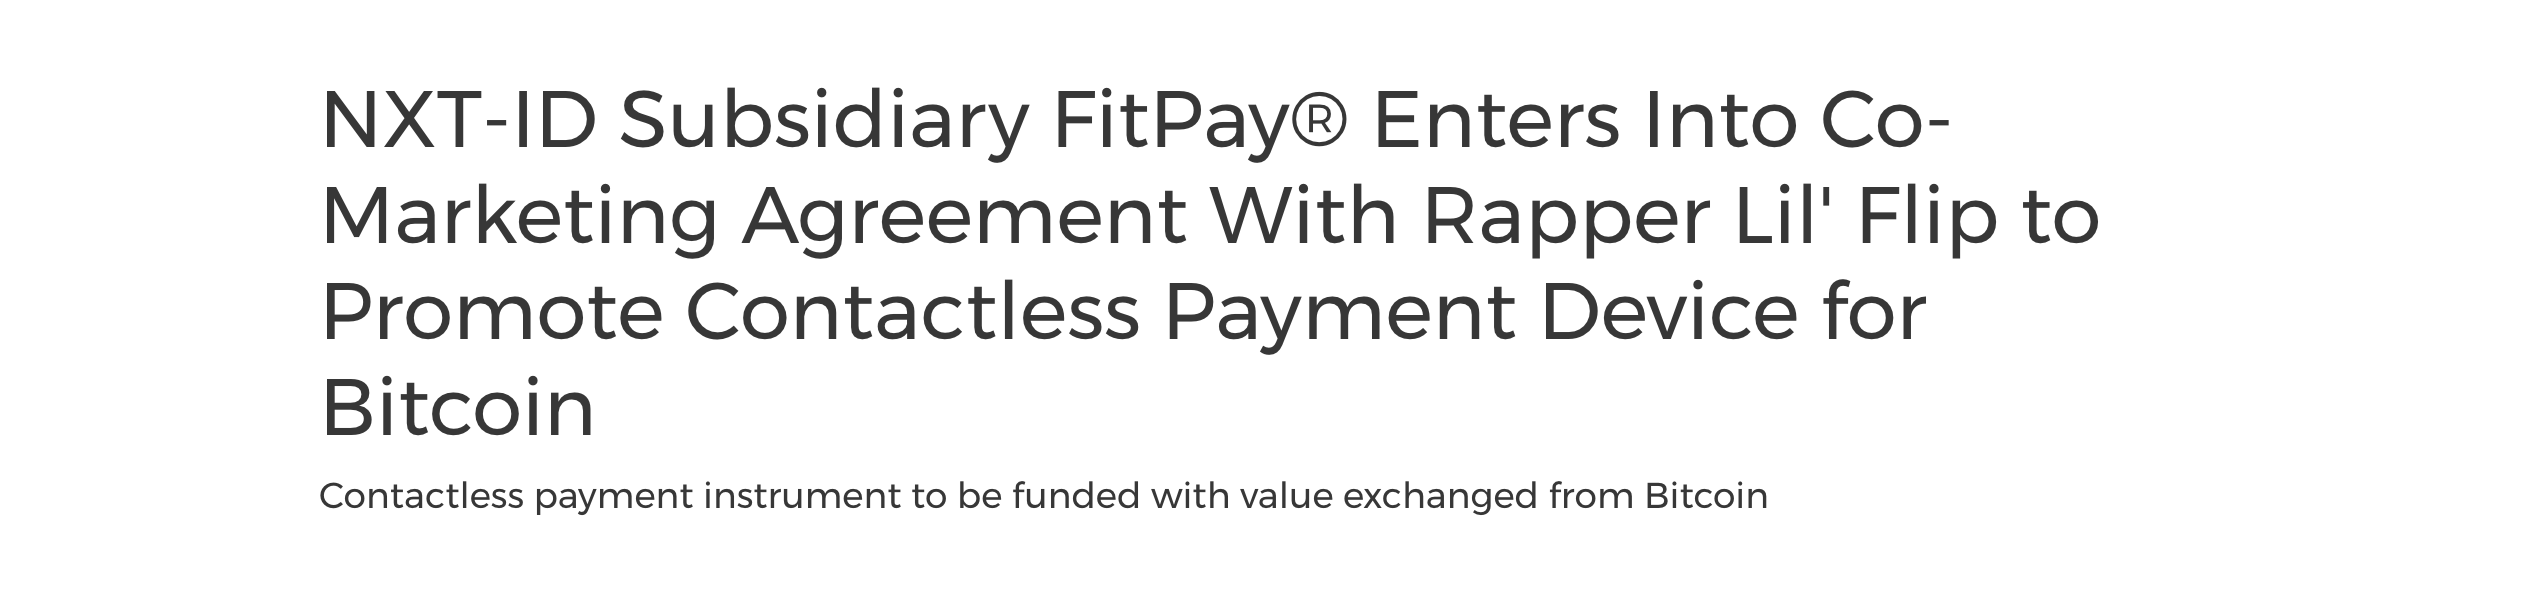 fitpay-NXT-ID